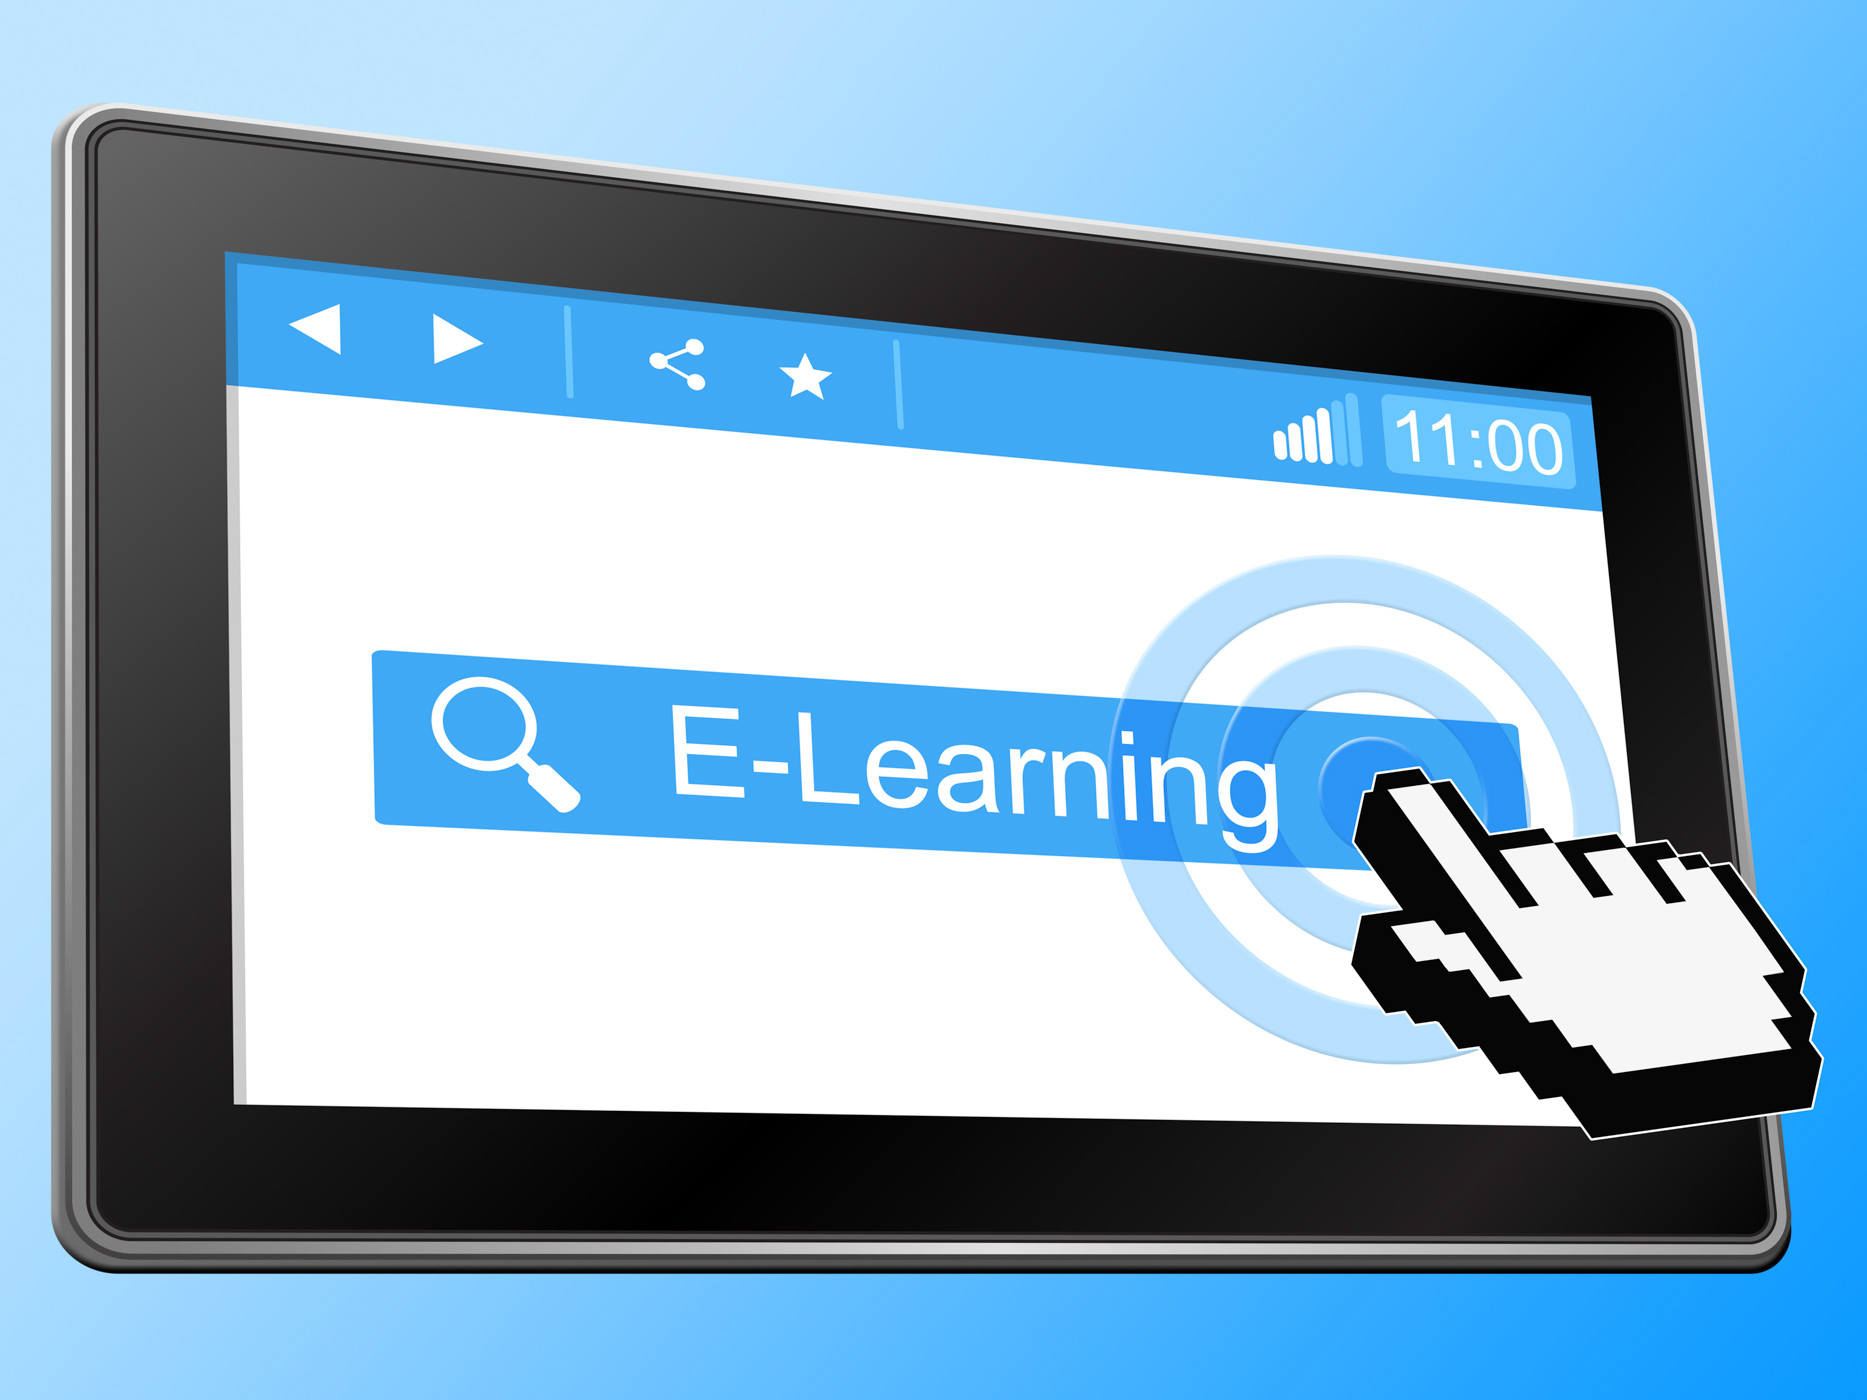 E Learning Shows World Wide Web And Website, College, Schooling, Worldwideweb, Websites, HQ Photo